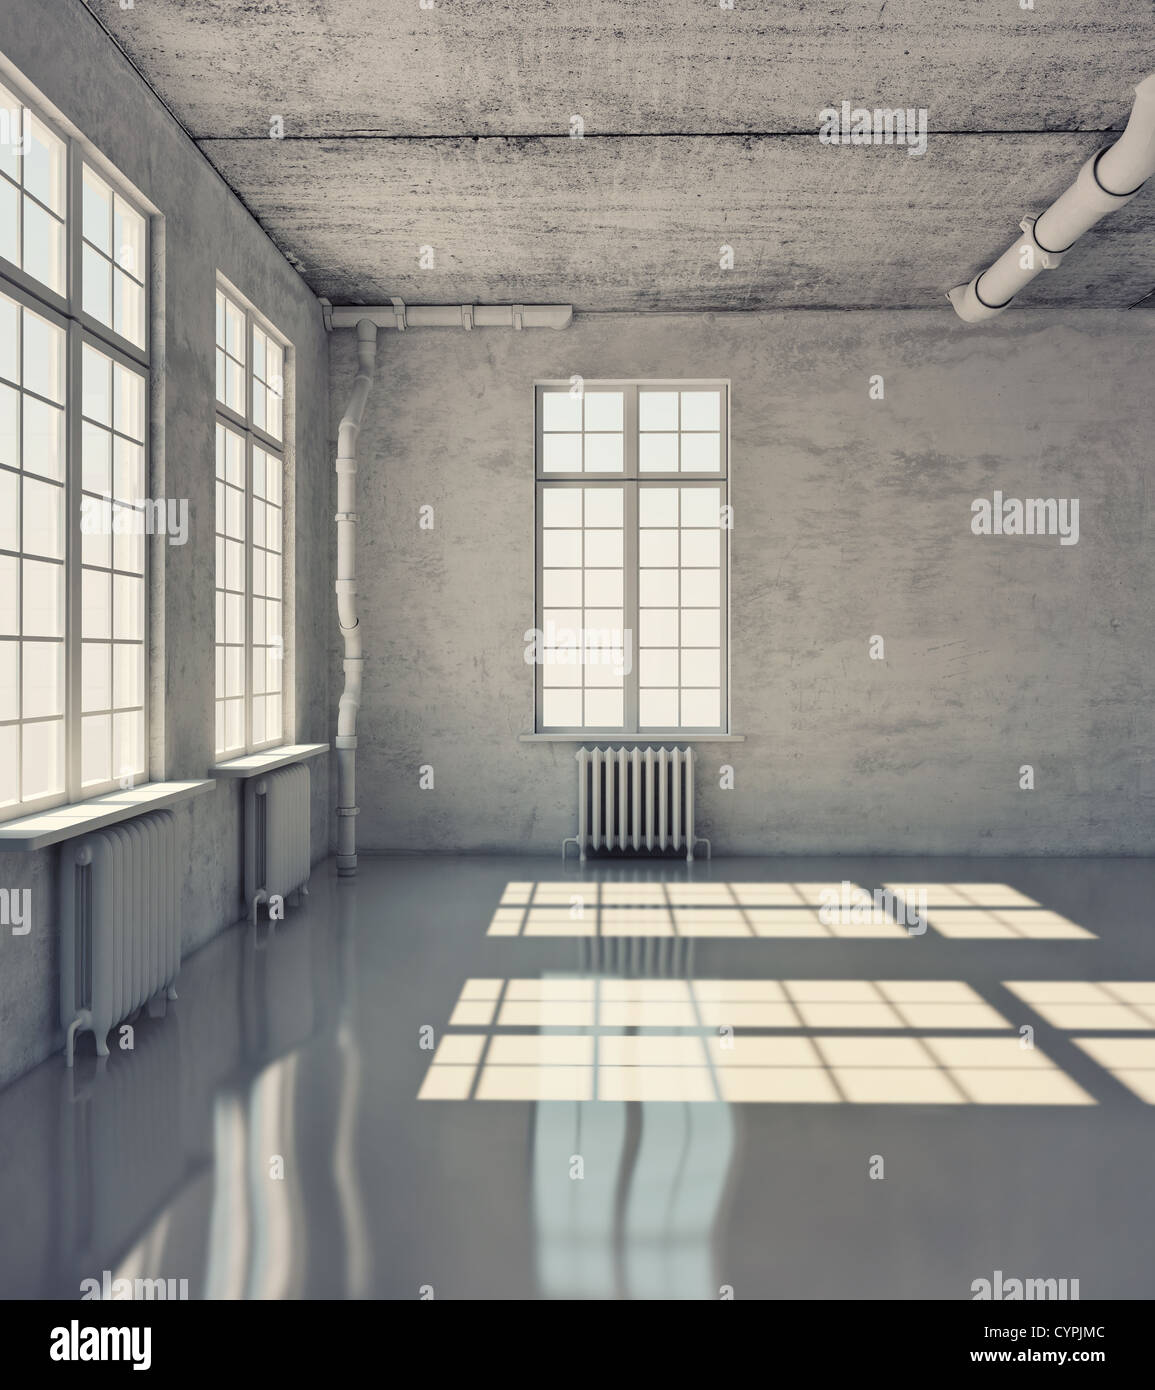 empty room with windows (loft concept) - Stock Image